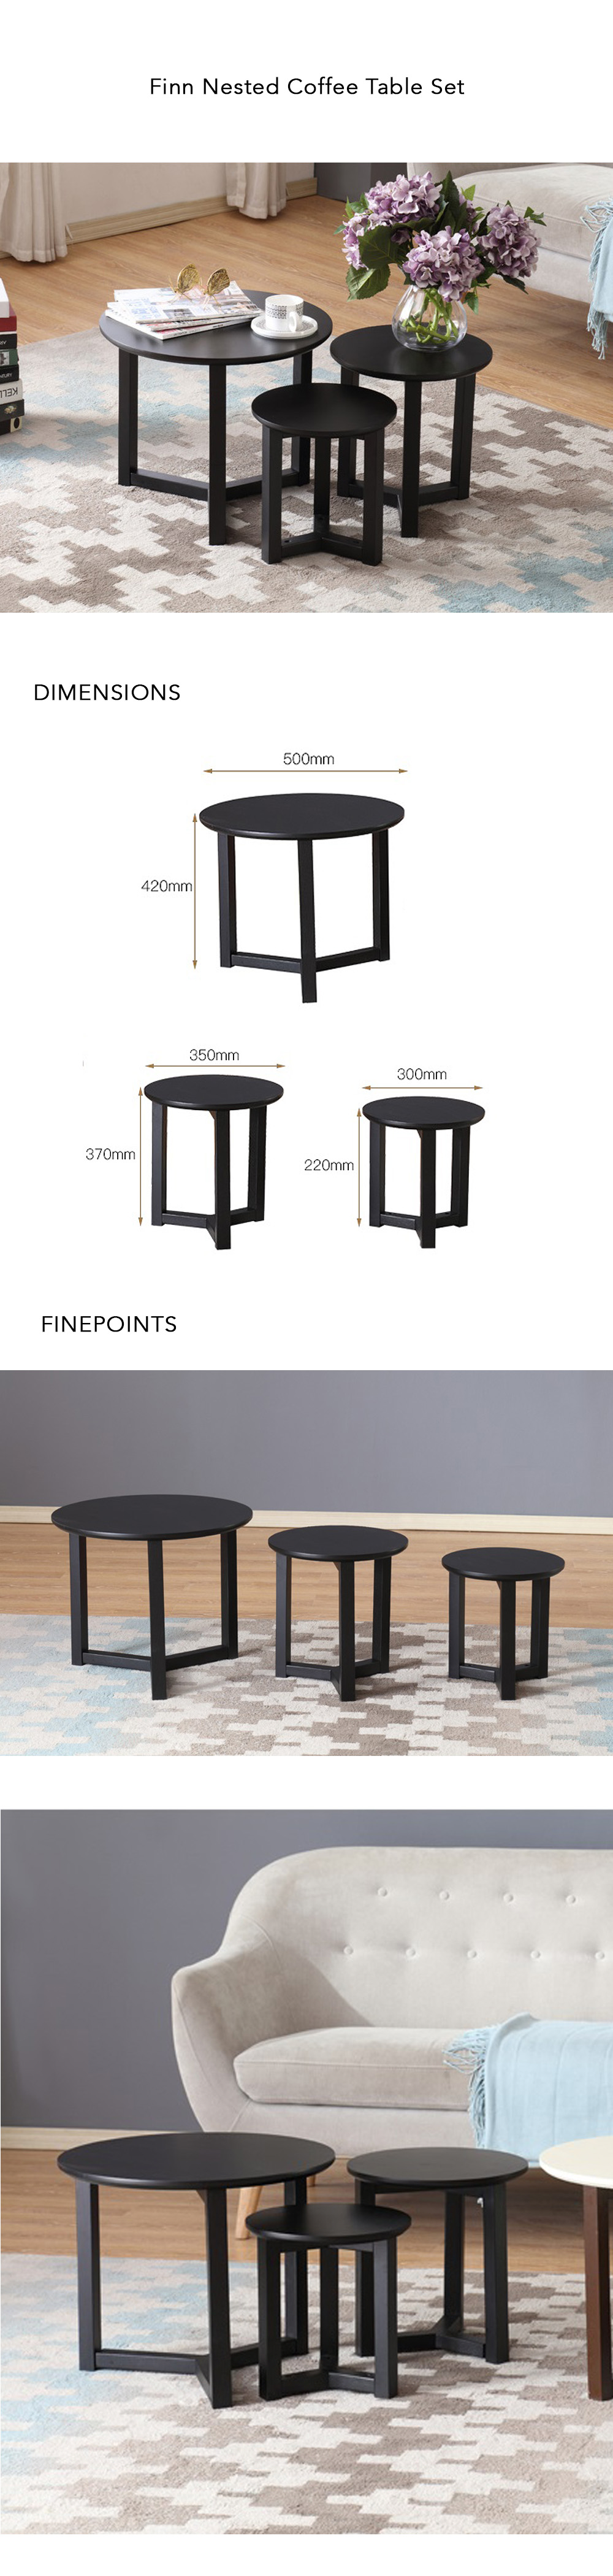 Finn_Nested_Coffee_Table_Set_specs_by_born_in_colour